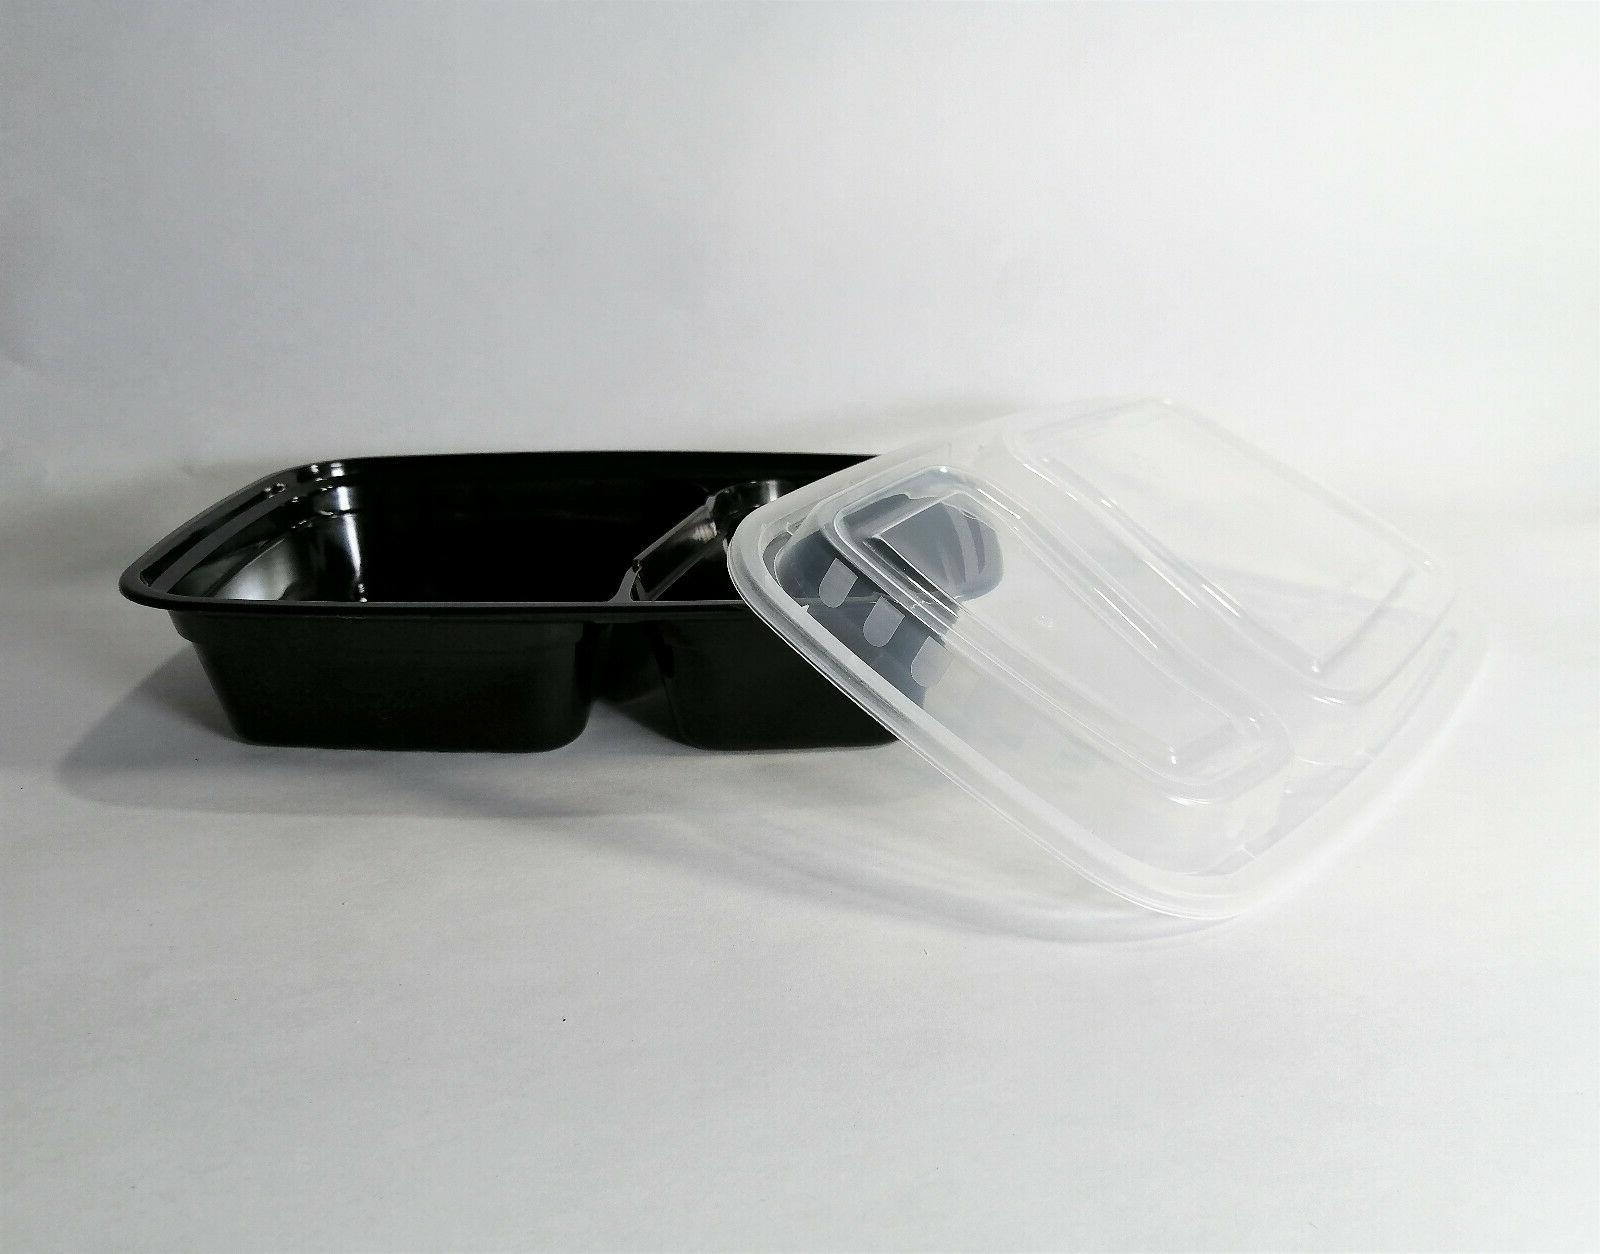 Containers with 2 Compartments, Microwavable, BPA